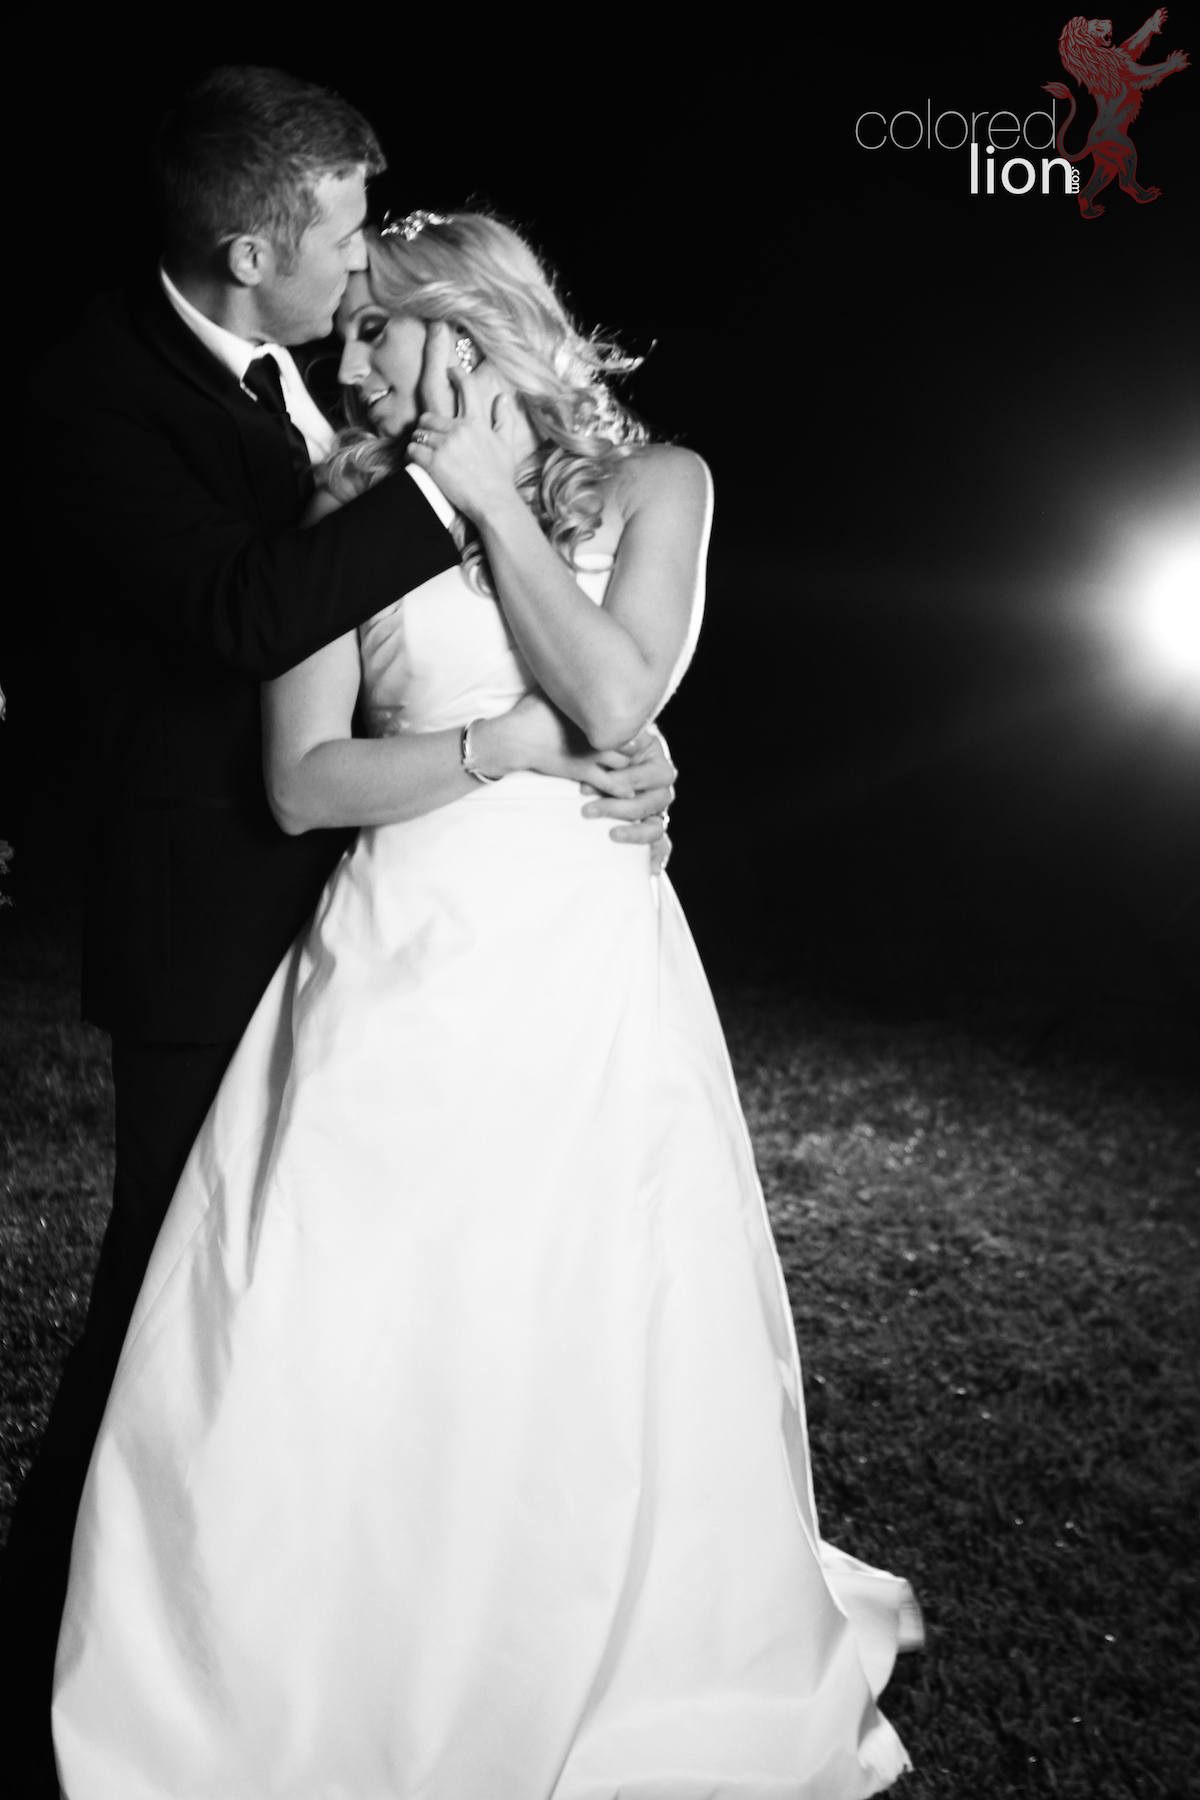 Tiffany-Scott-Wedding-Photography-Austin-Buffalo-Creek-12b